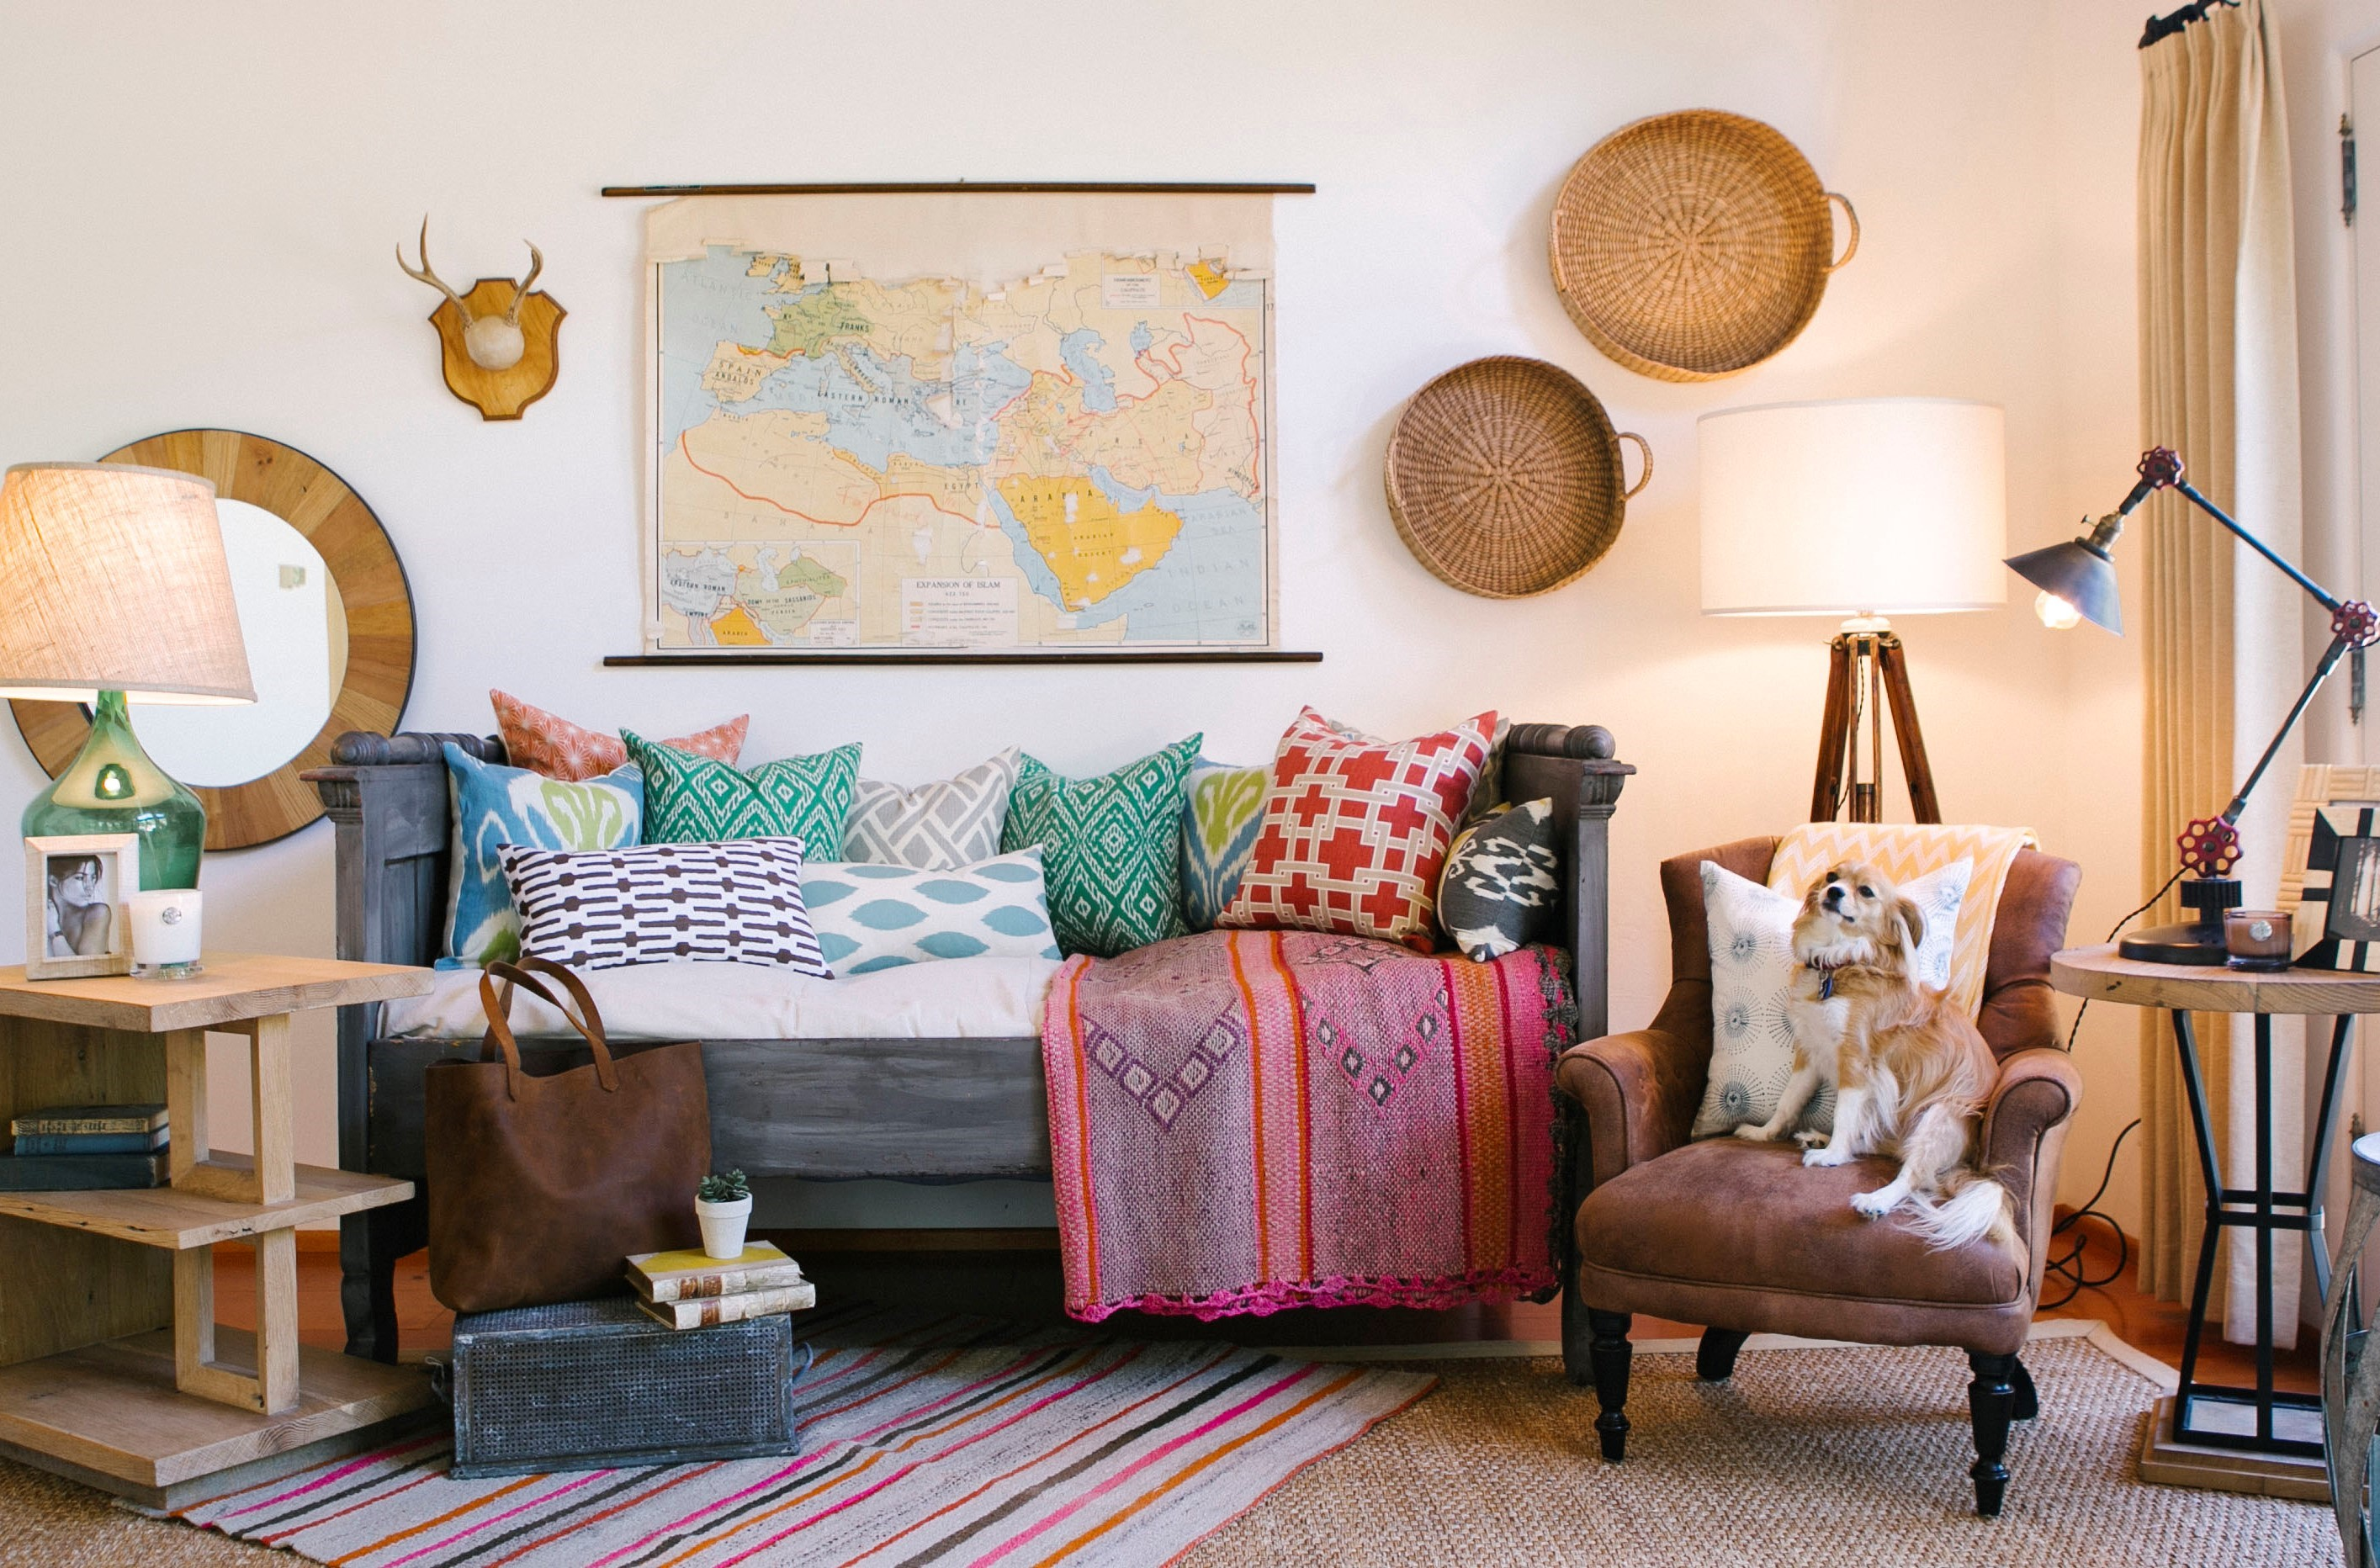 Your Home Decor Style and How It Benefits You